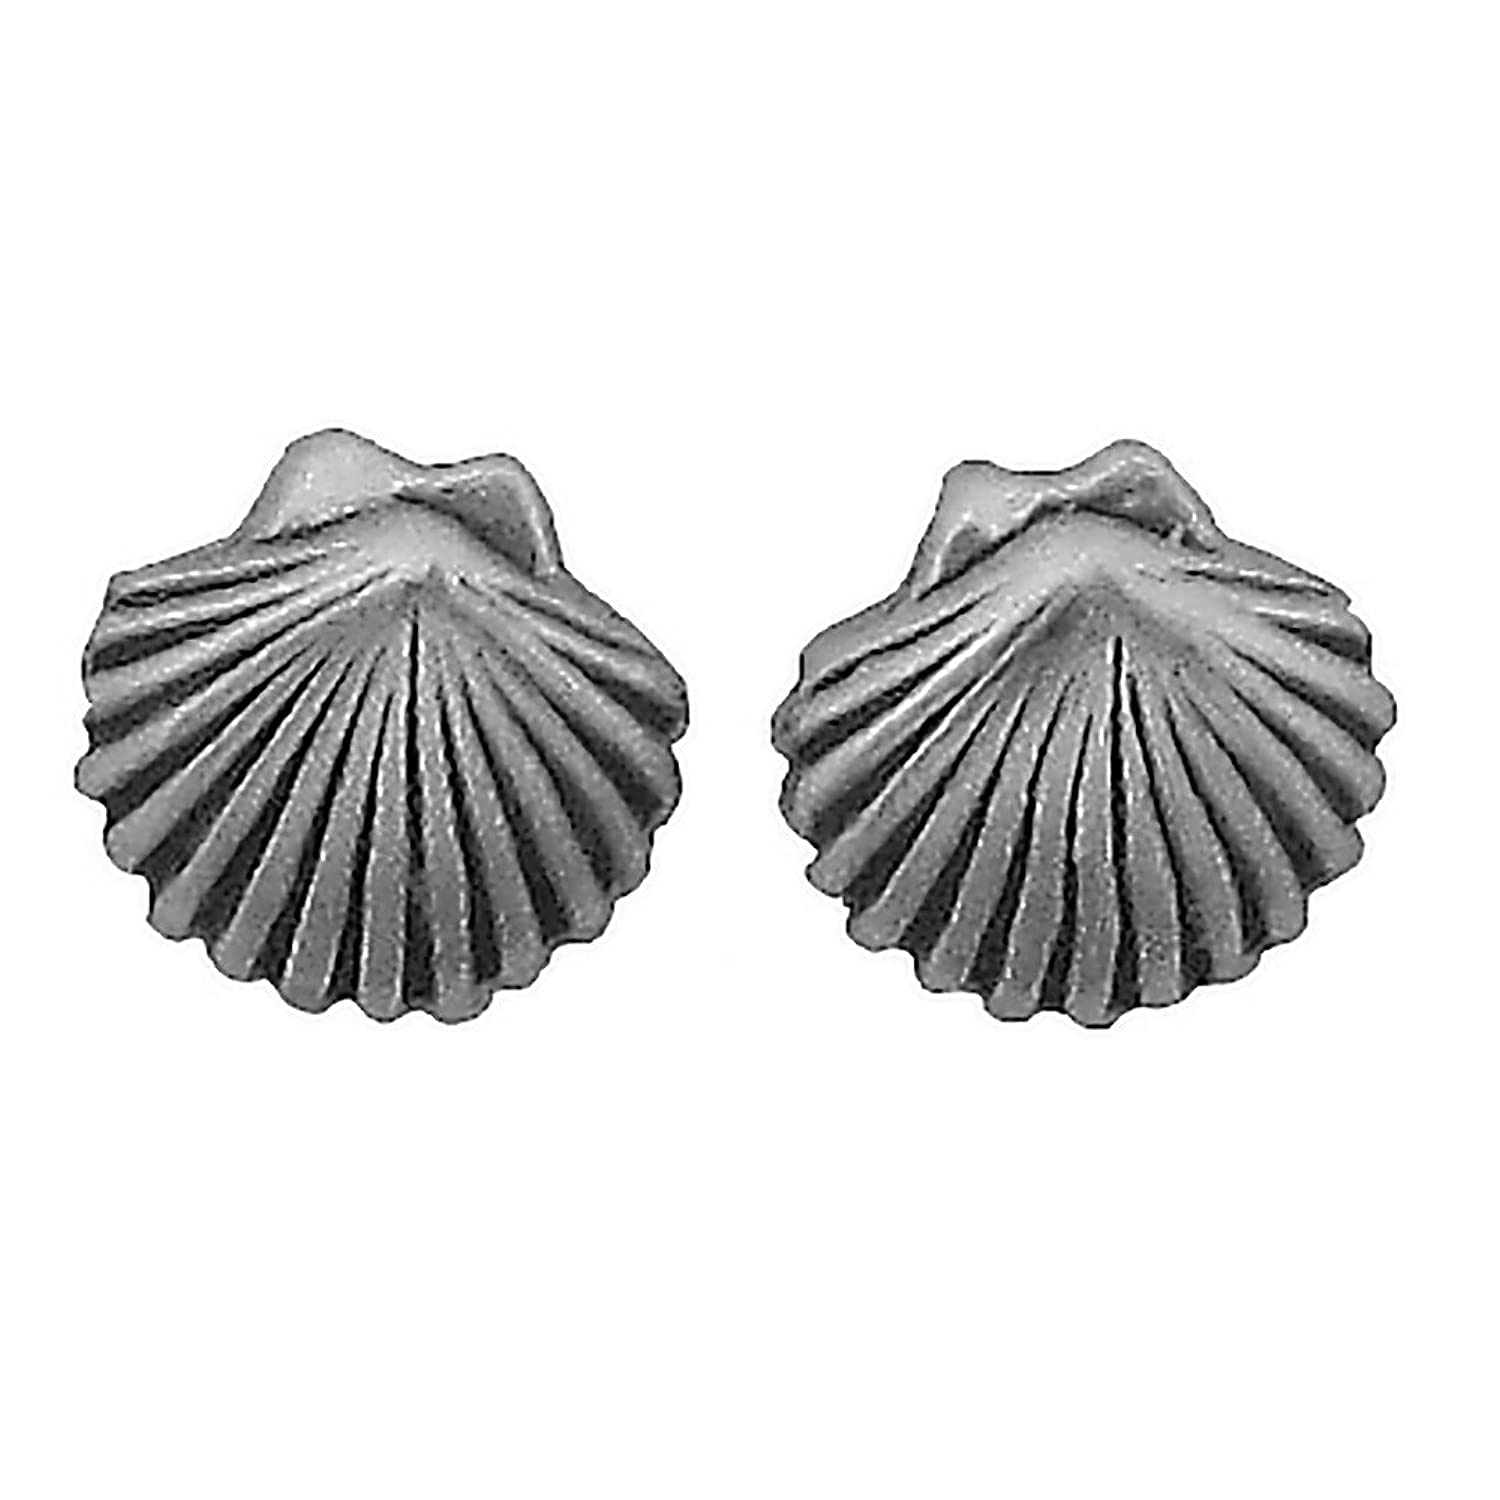 in jewelry shell nautical item conch ariel from silver for mermaid beach kinitial sea seashell earrings studs earring fashion women stud gold